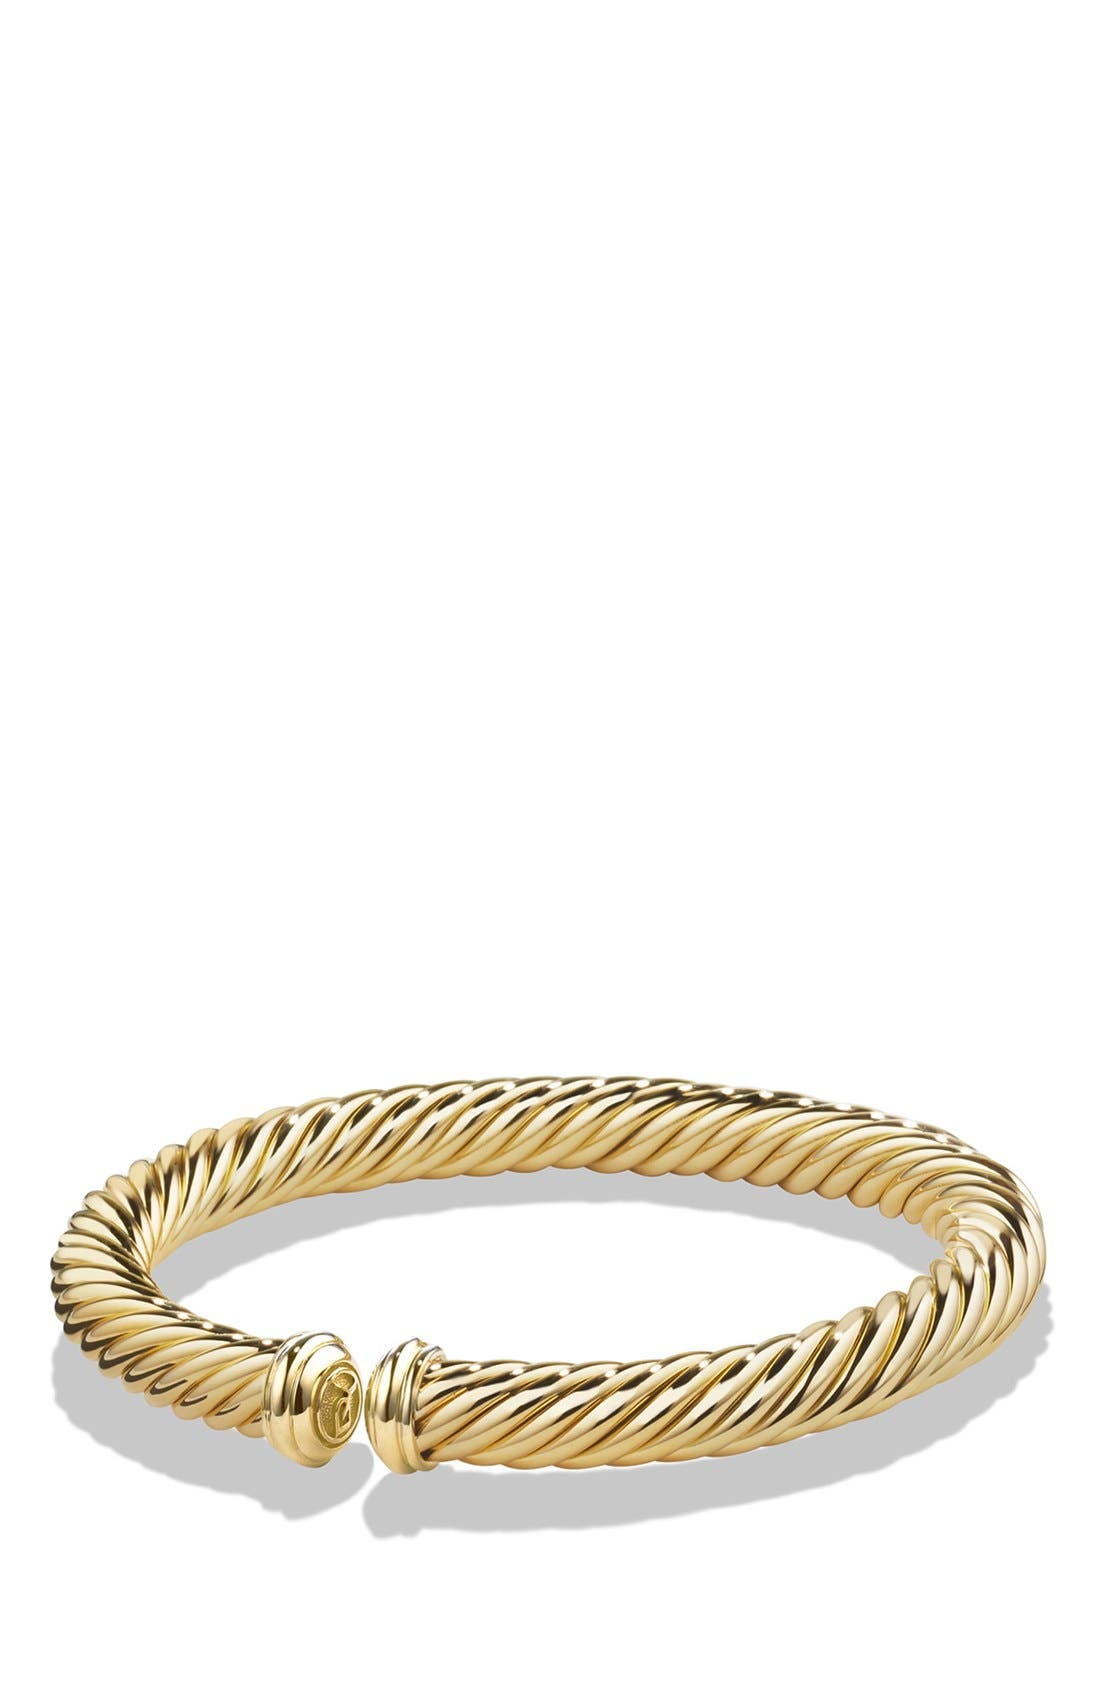 Cable Spira Bracelet in 18K Gold, 7mm,                             Main thumbnail 1, color,                             Yellow Gold